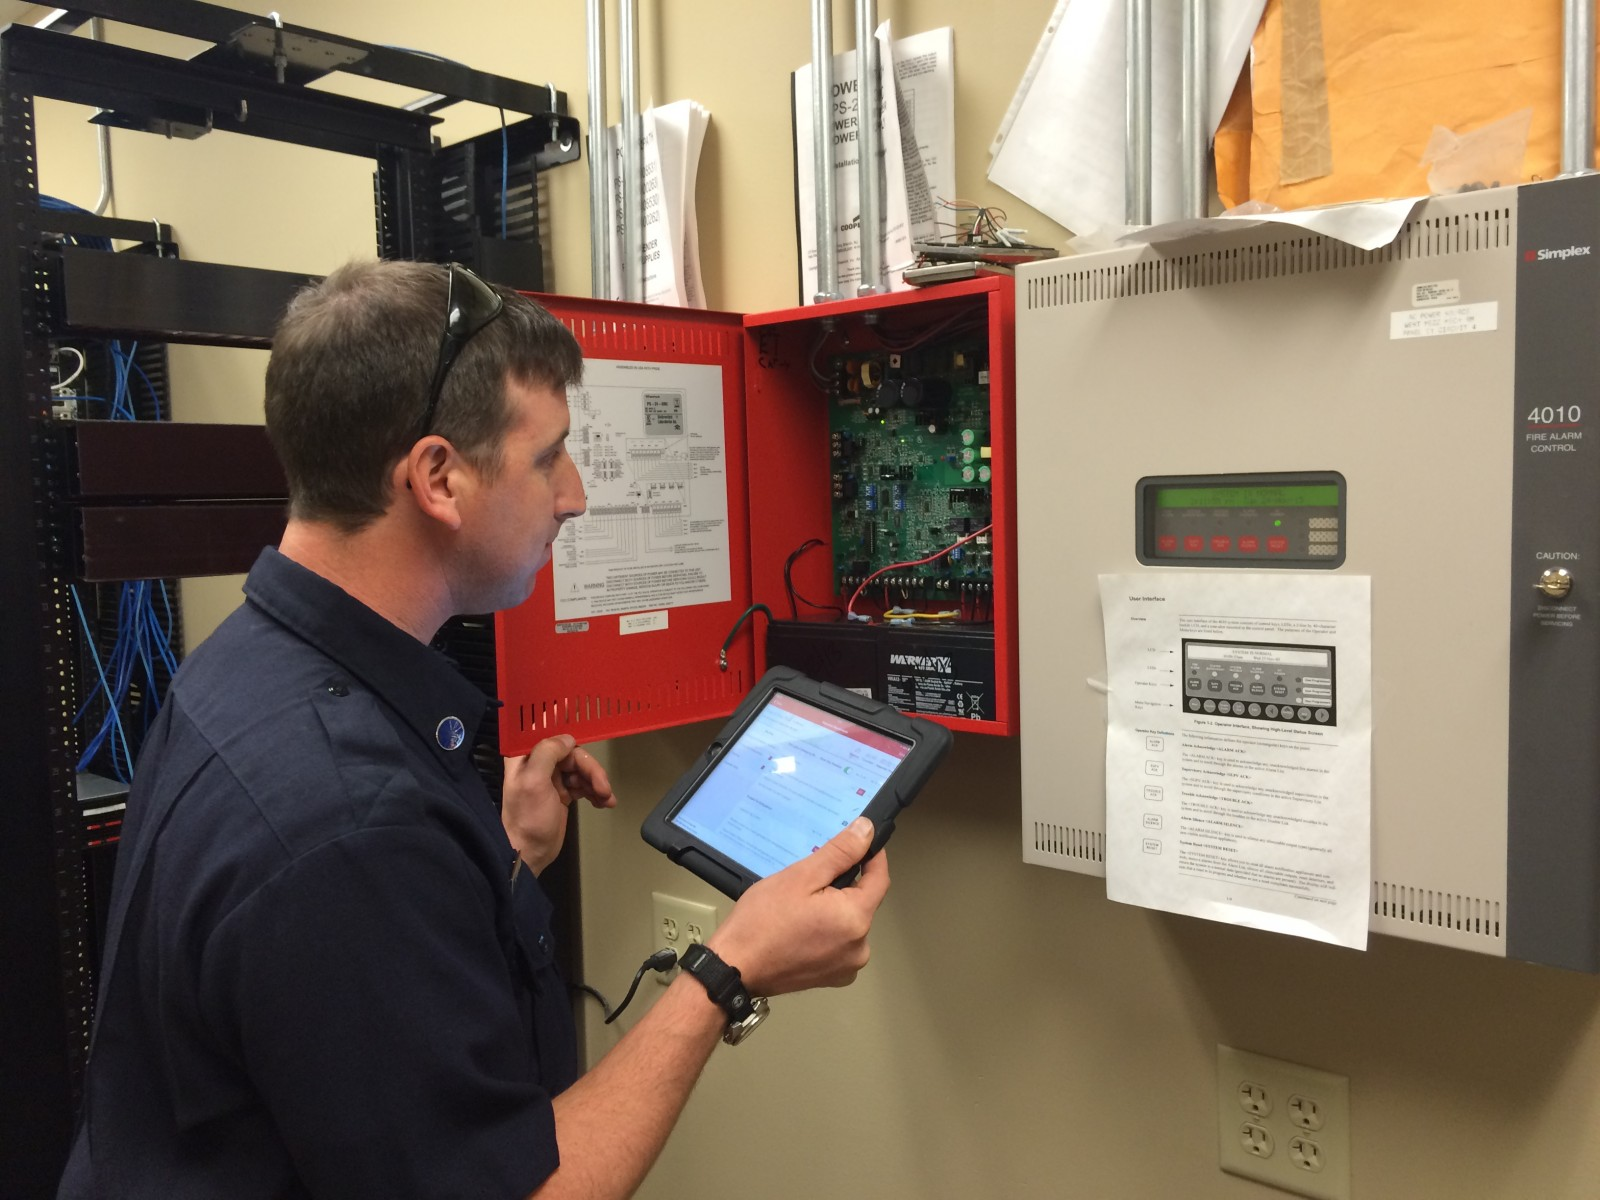 GCFD Firefighter Inspecting a Fire Alarm Panel